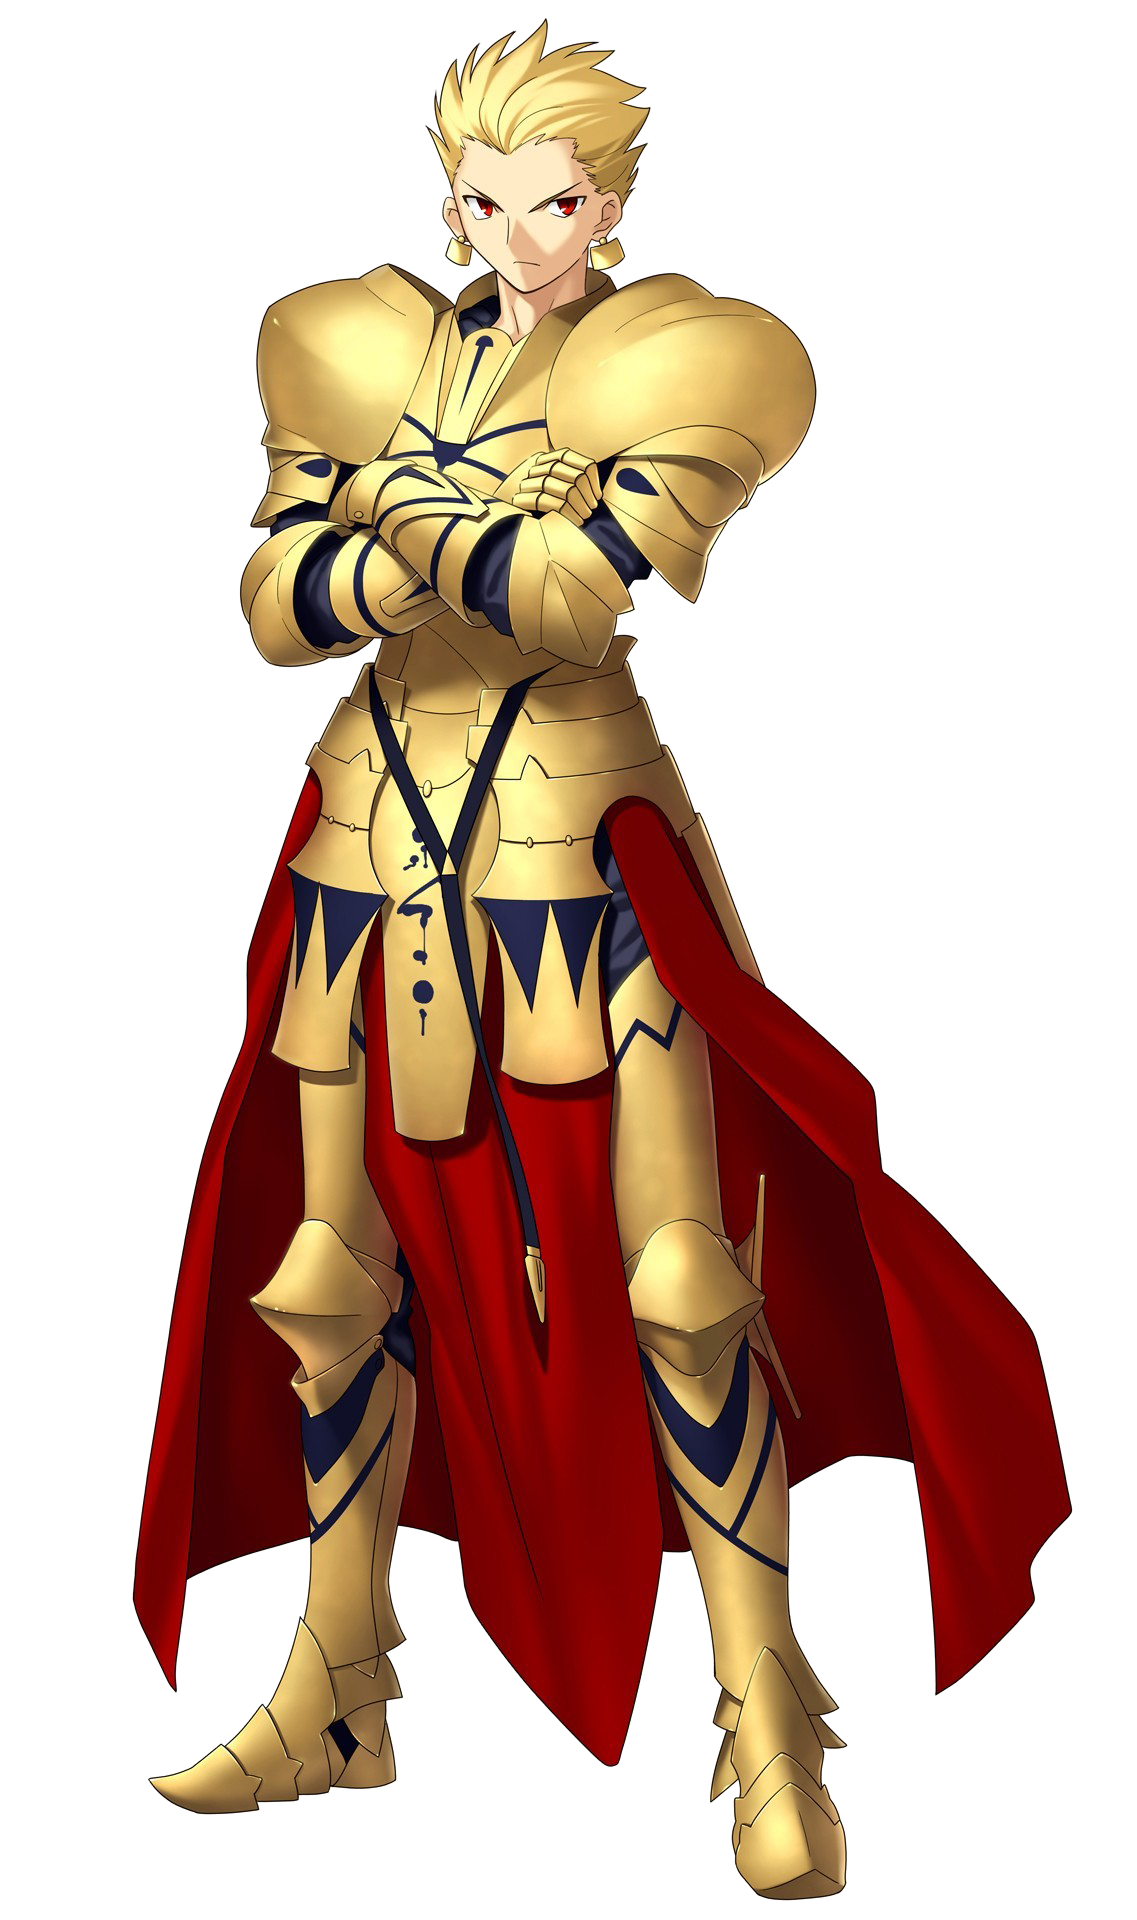 Jewel clipart riches. Golden rule superpower wiki